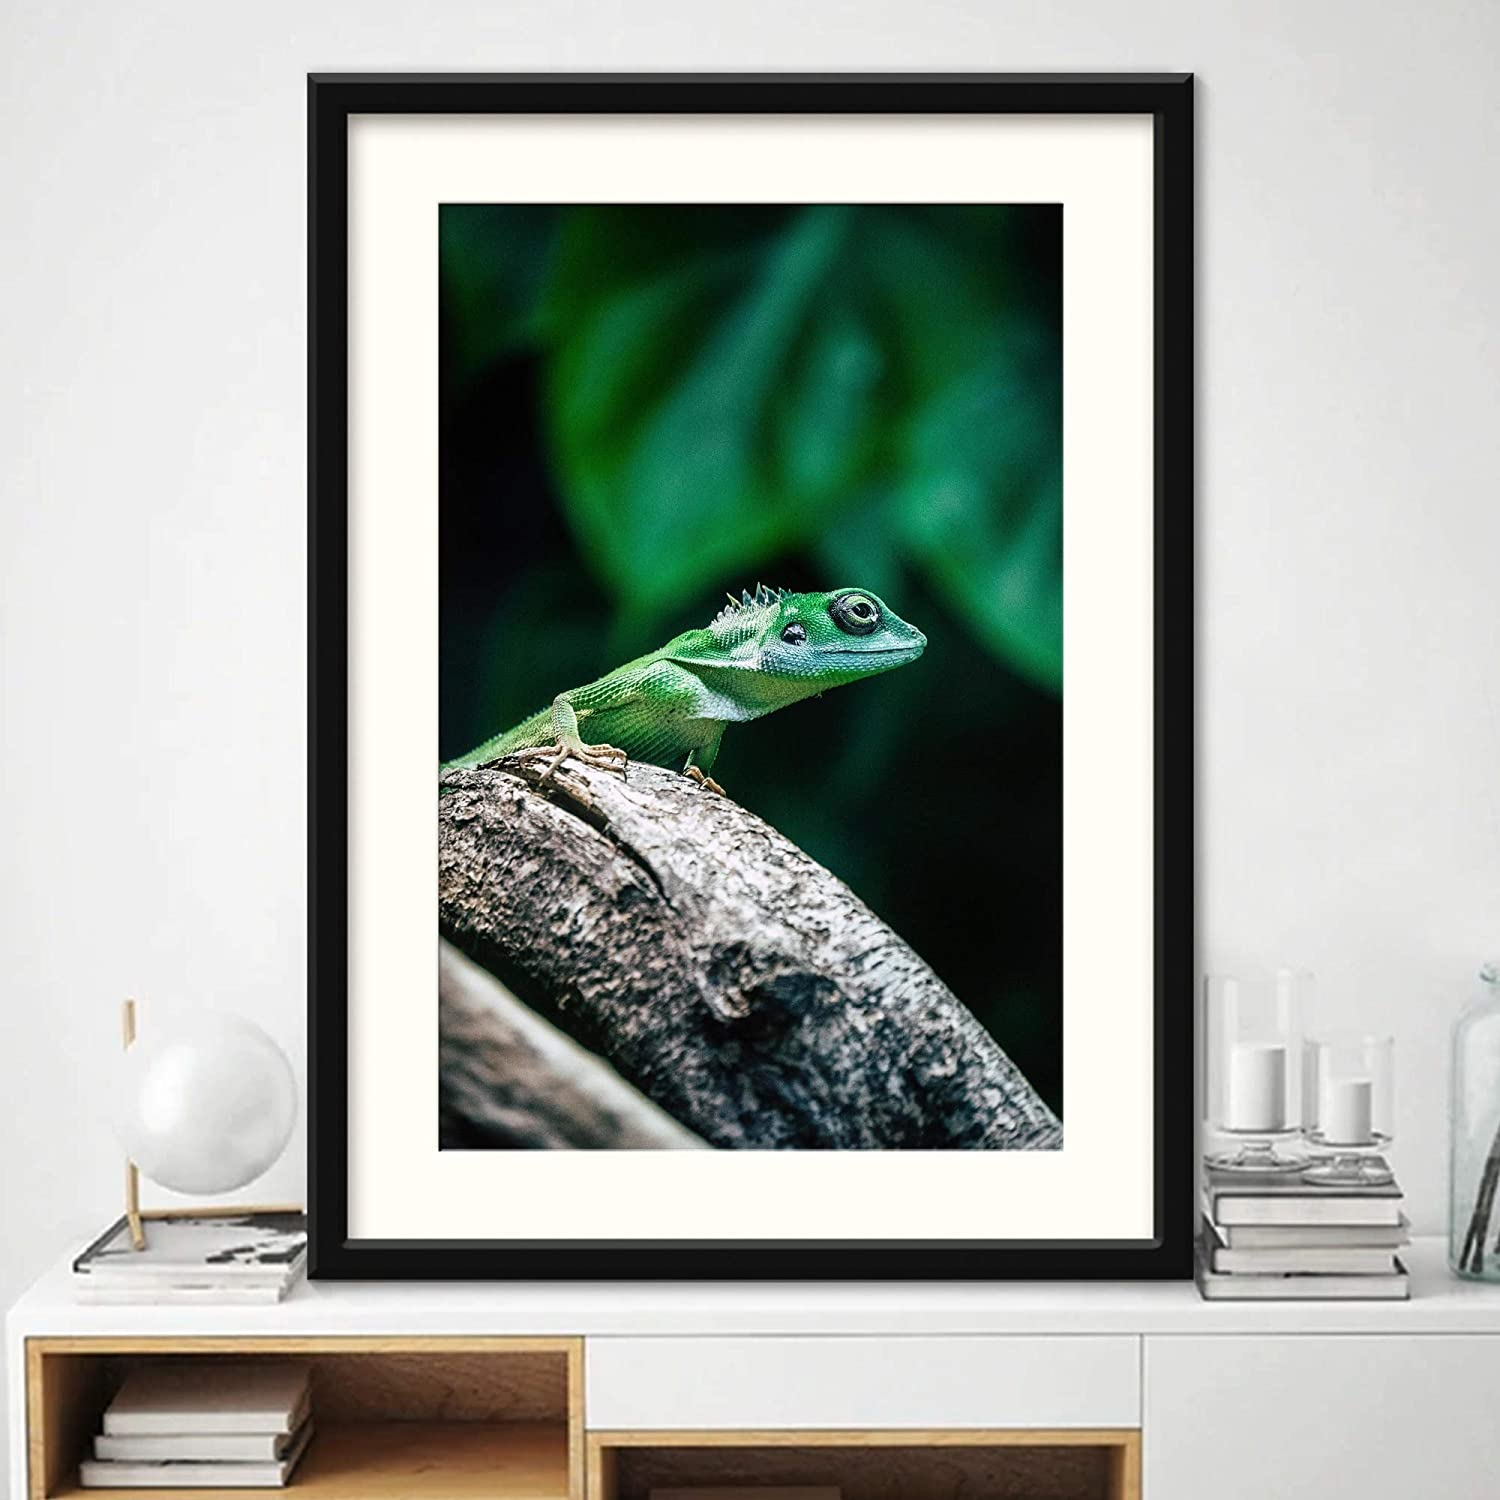 Recommendation H5print Framed Canvas Wall Art XVI San Jose Mall Dramatic Contemporary Reptile